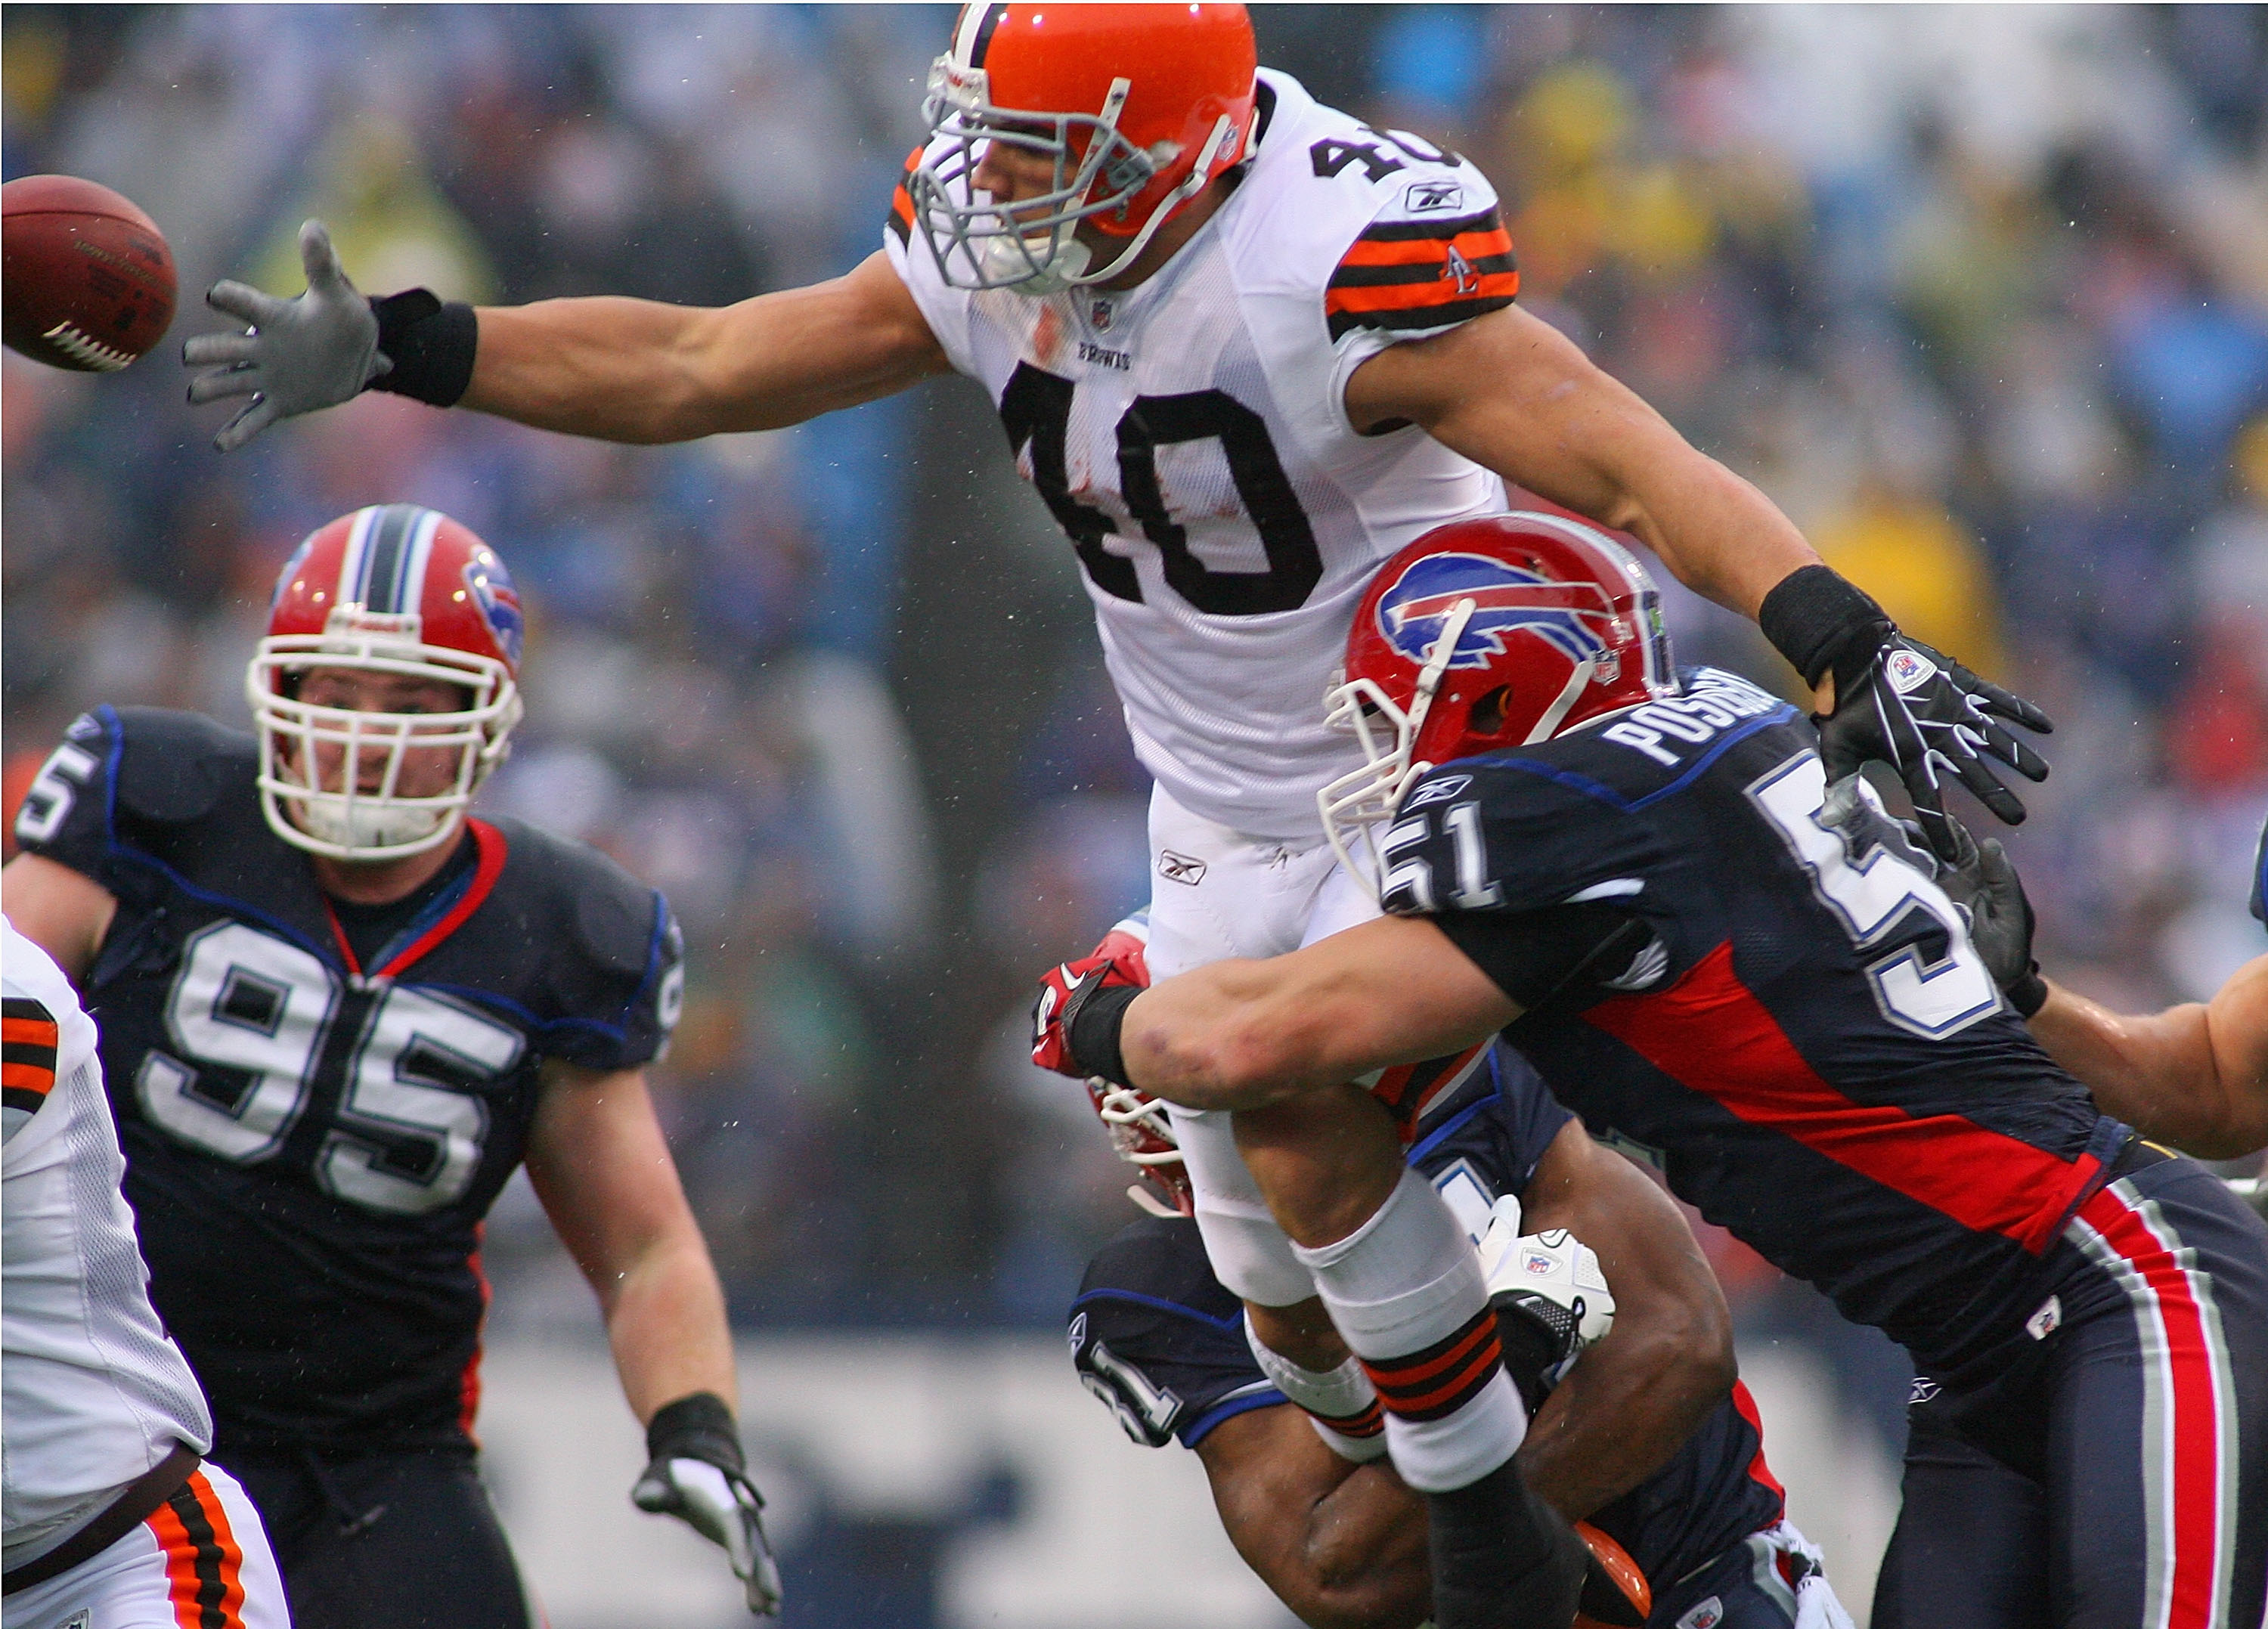 ORCHARD PARK, NY - DECEMBER 12:  Peyton Hillis #40 of the Cleveland Browns fumbles as he tries to jump over Paul Posluszny #51 of the Buffalo Bills at Ralph Wilson Stadium on December 12, 2010 in Orchard Park, New York. Buffalo won 13-6.  (Photo by Rick S